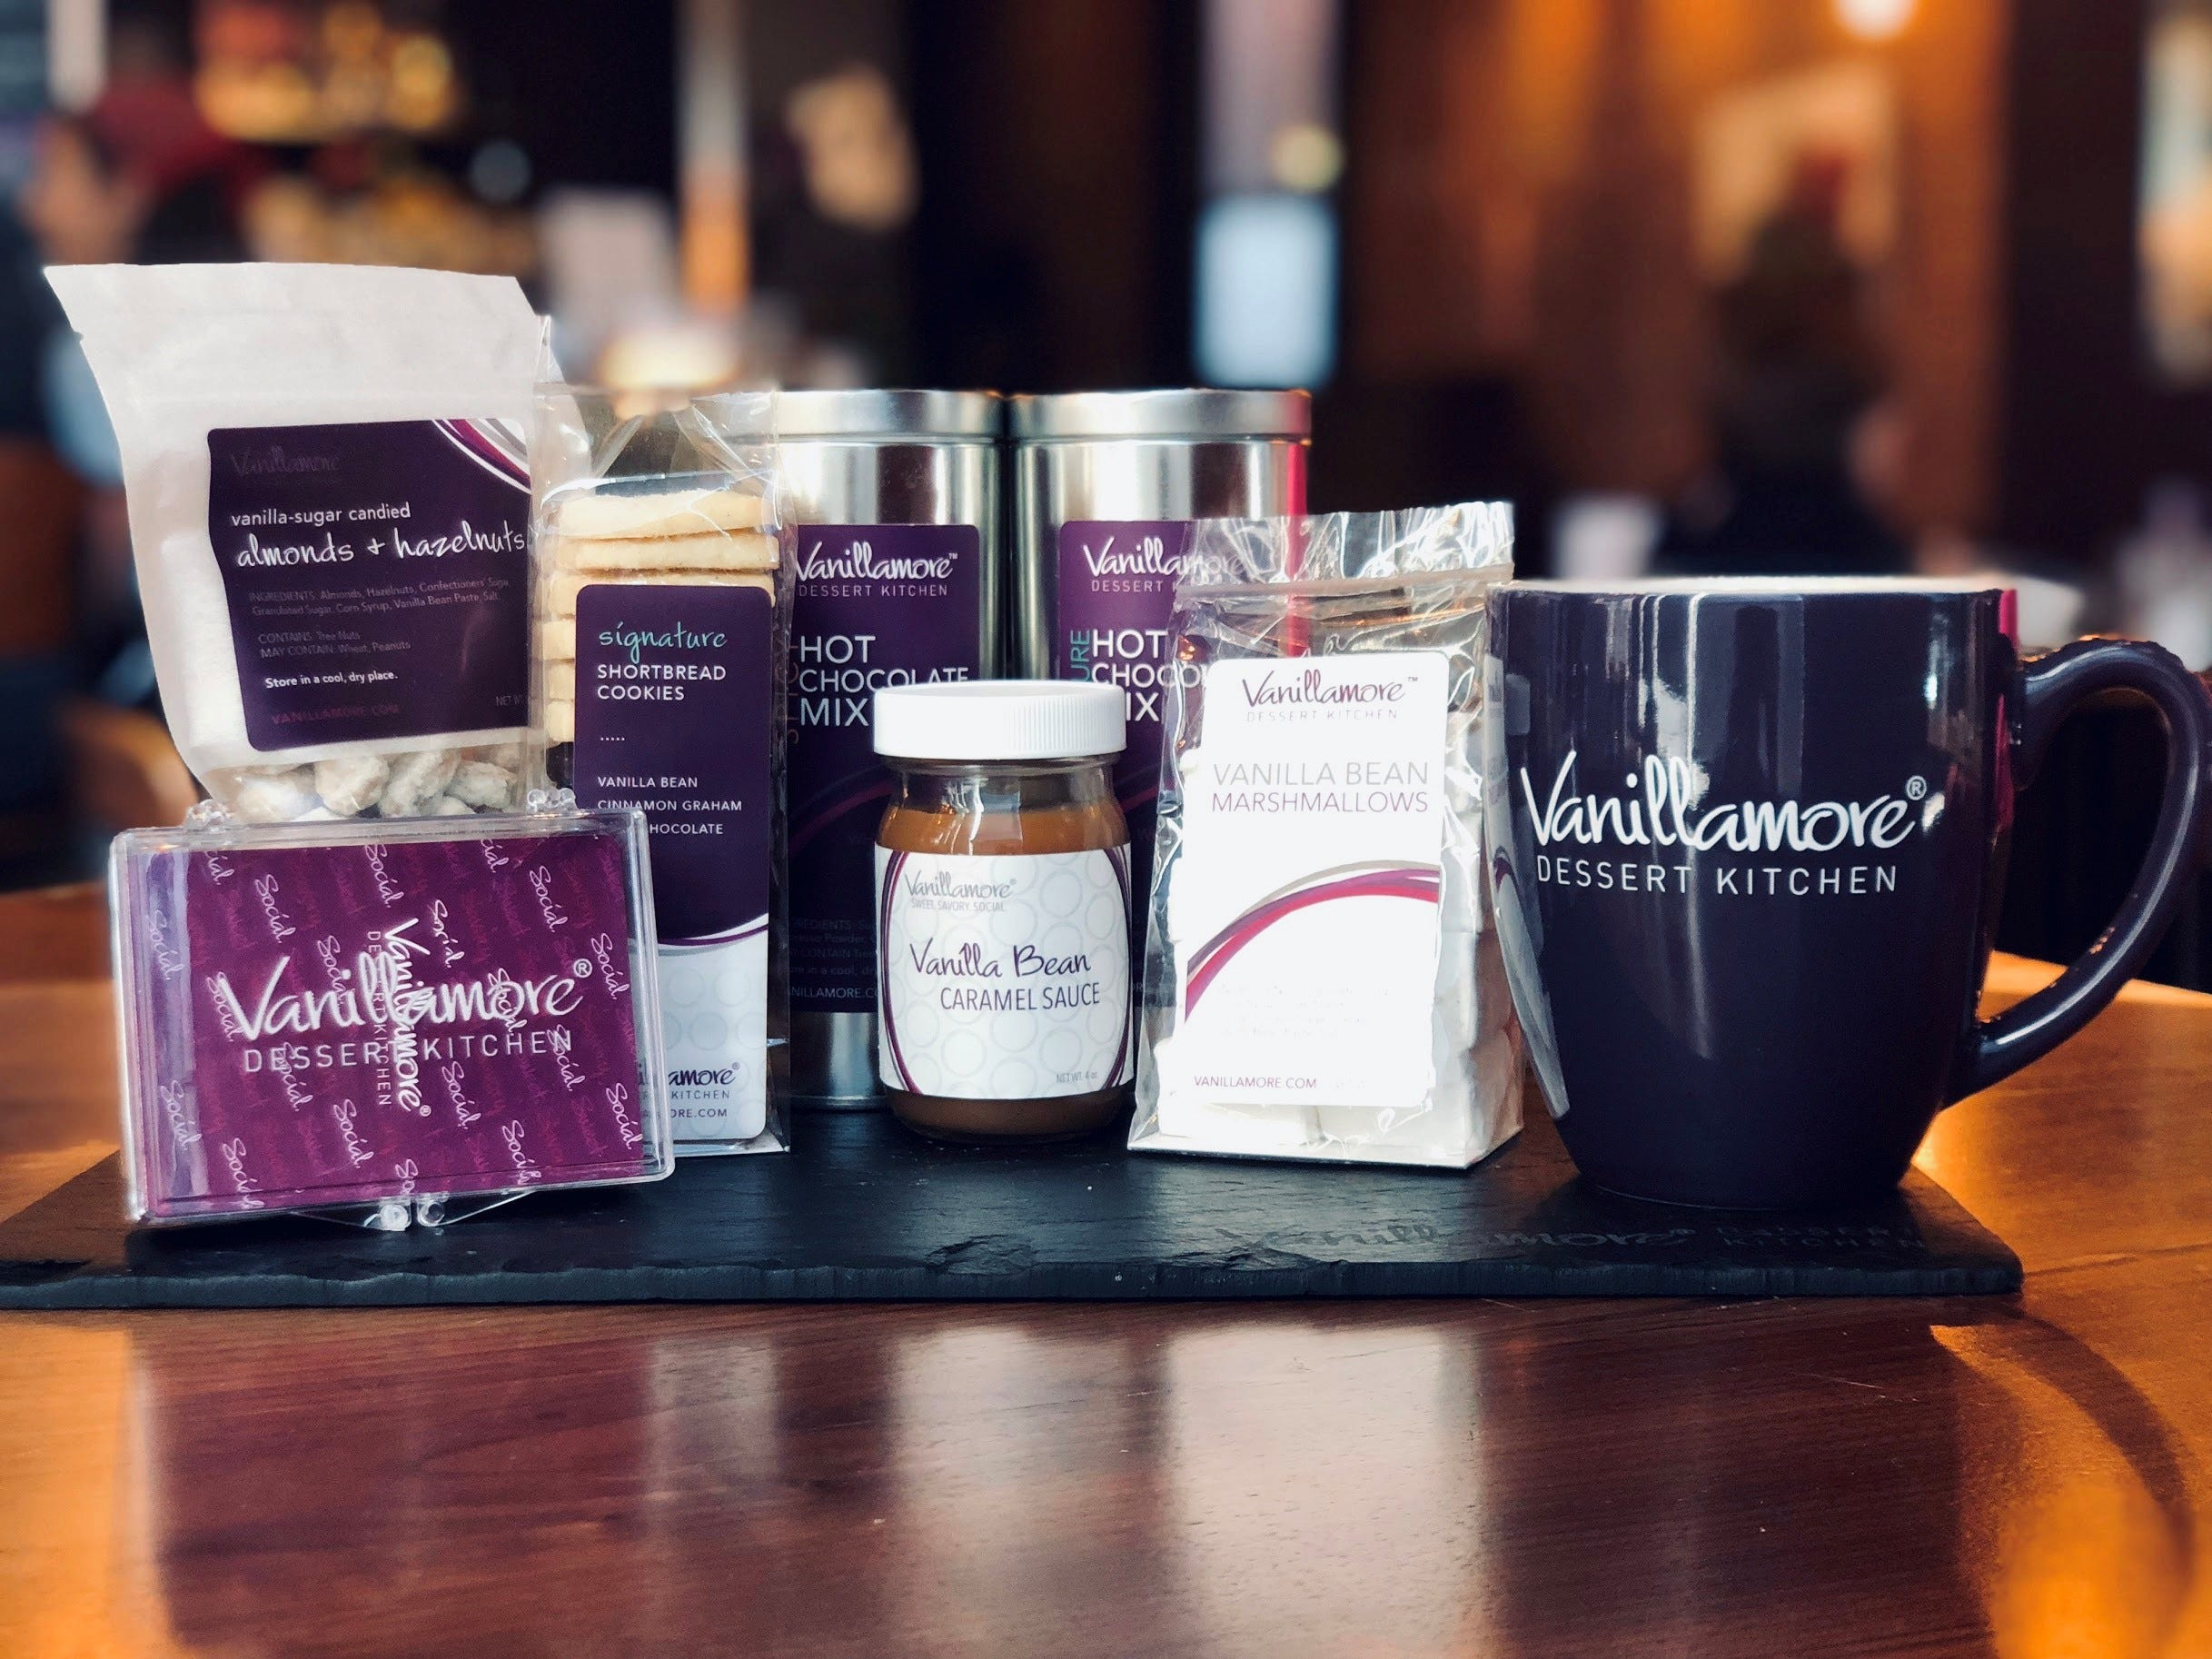 If someone on your list has a sweet tooth, gift them cookies, marshmallows and hot chocolate mix from Vanillamore, a dessert lounge and restaurant in Montclair.